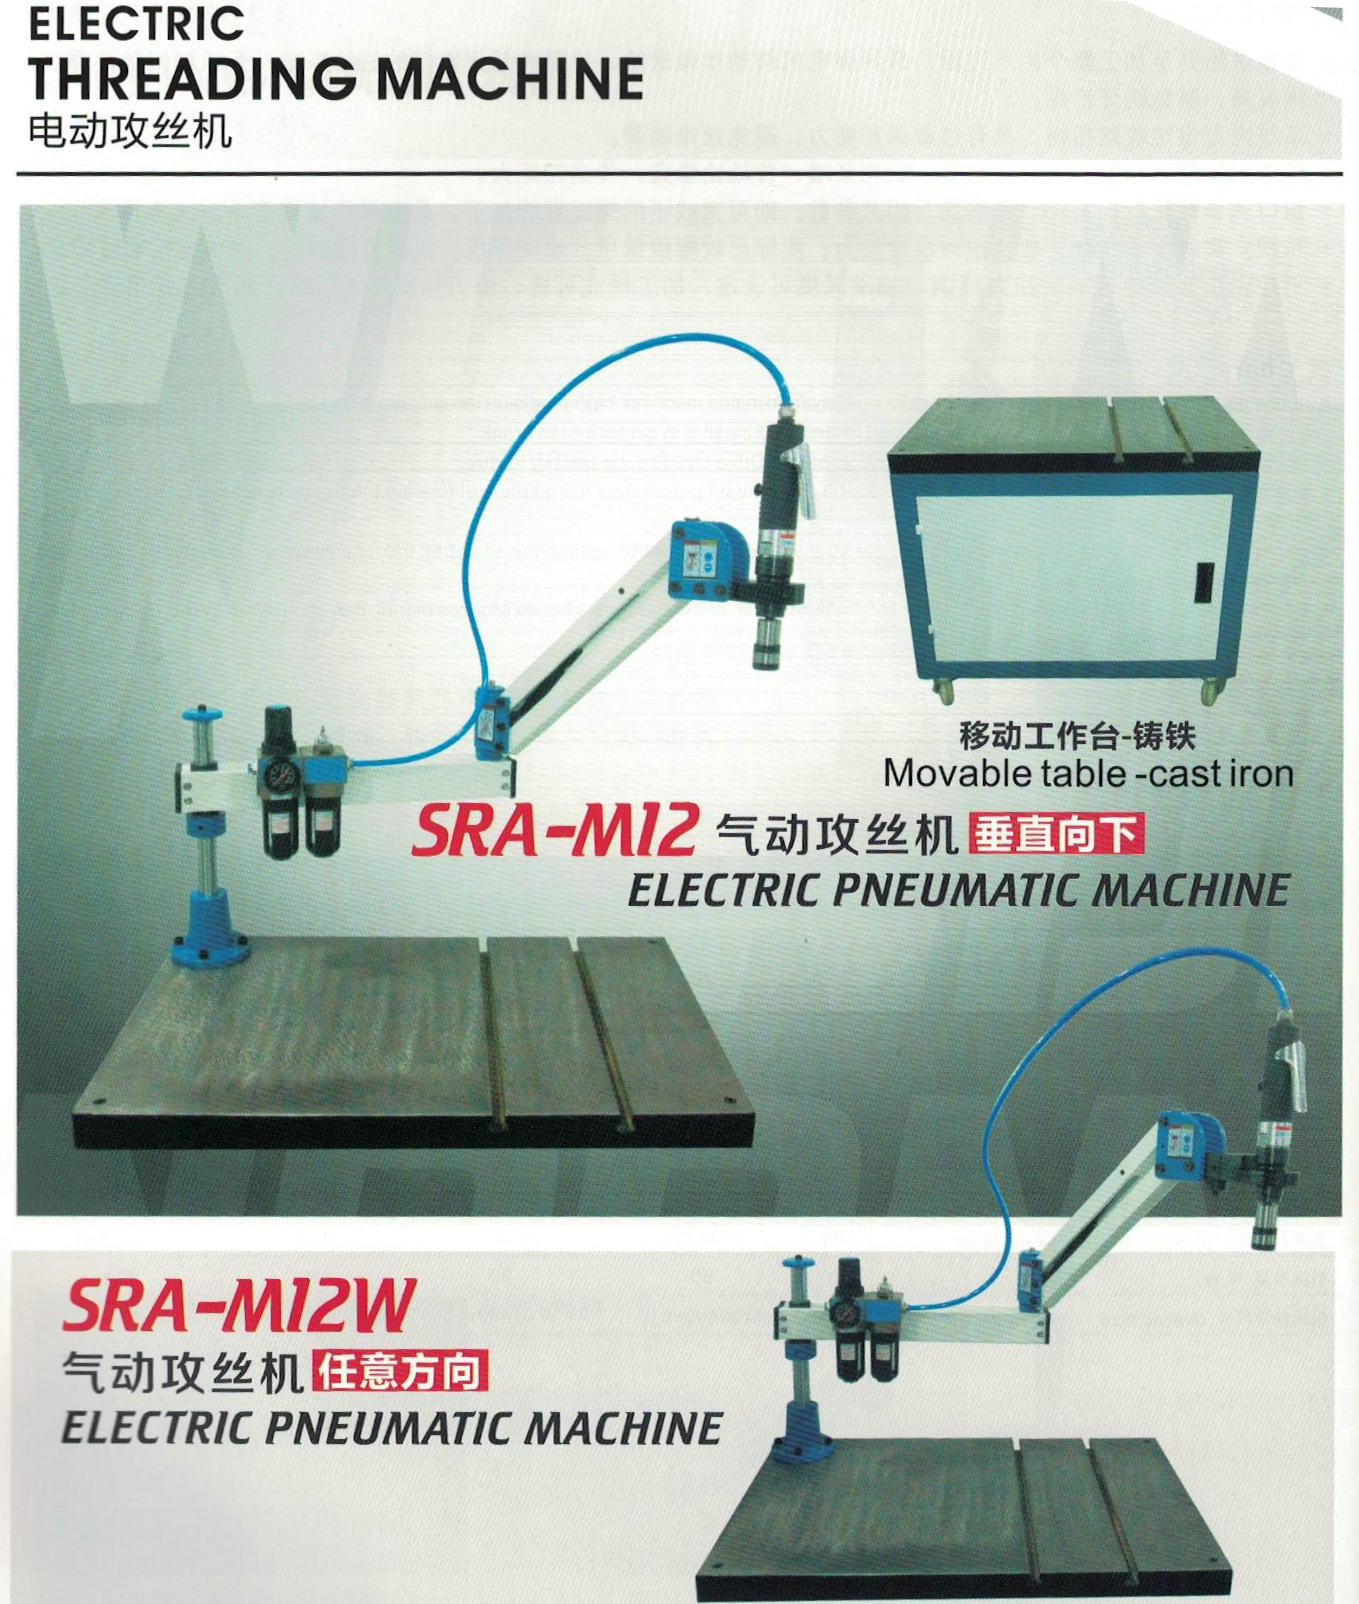 ELECTRICAL THREADING MACHINE SRAM12W